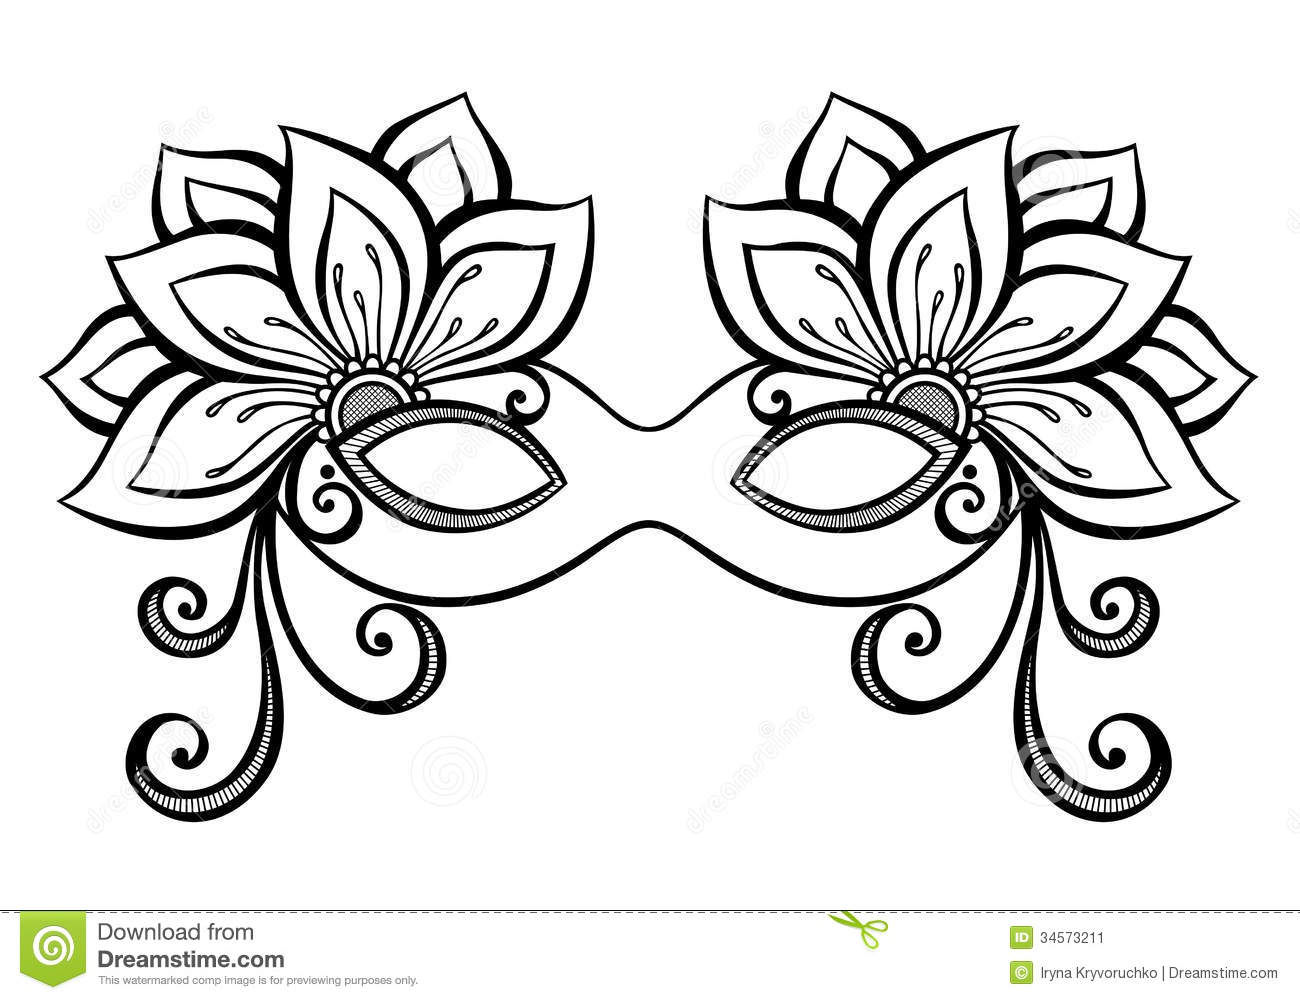 Coloring Pages Mardi Gras Color Pages mardi gras coloring pages free printable redcabworcester masquerade ball masks colouring pages